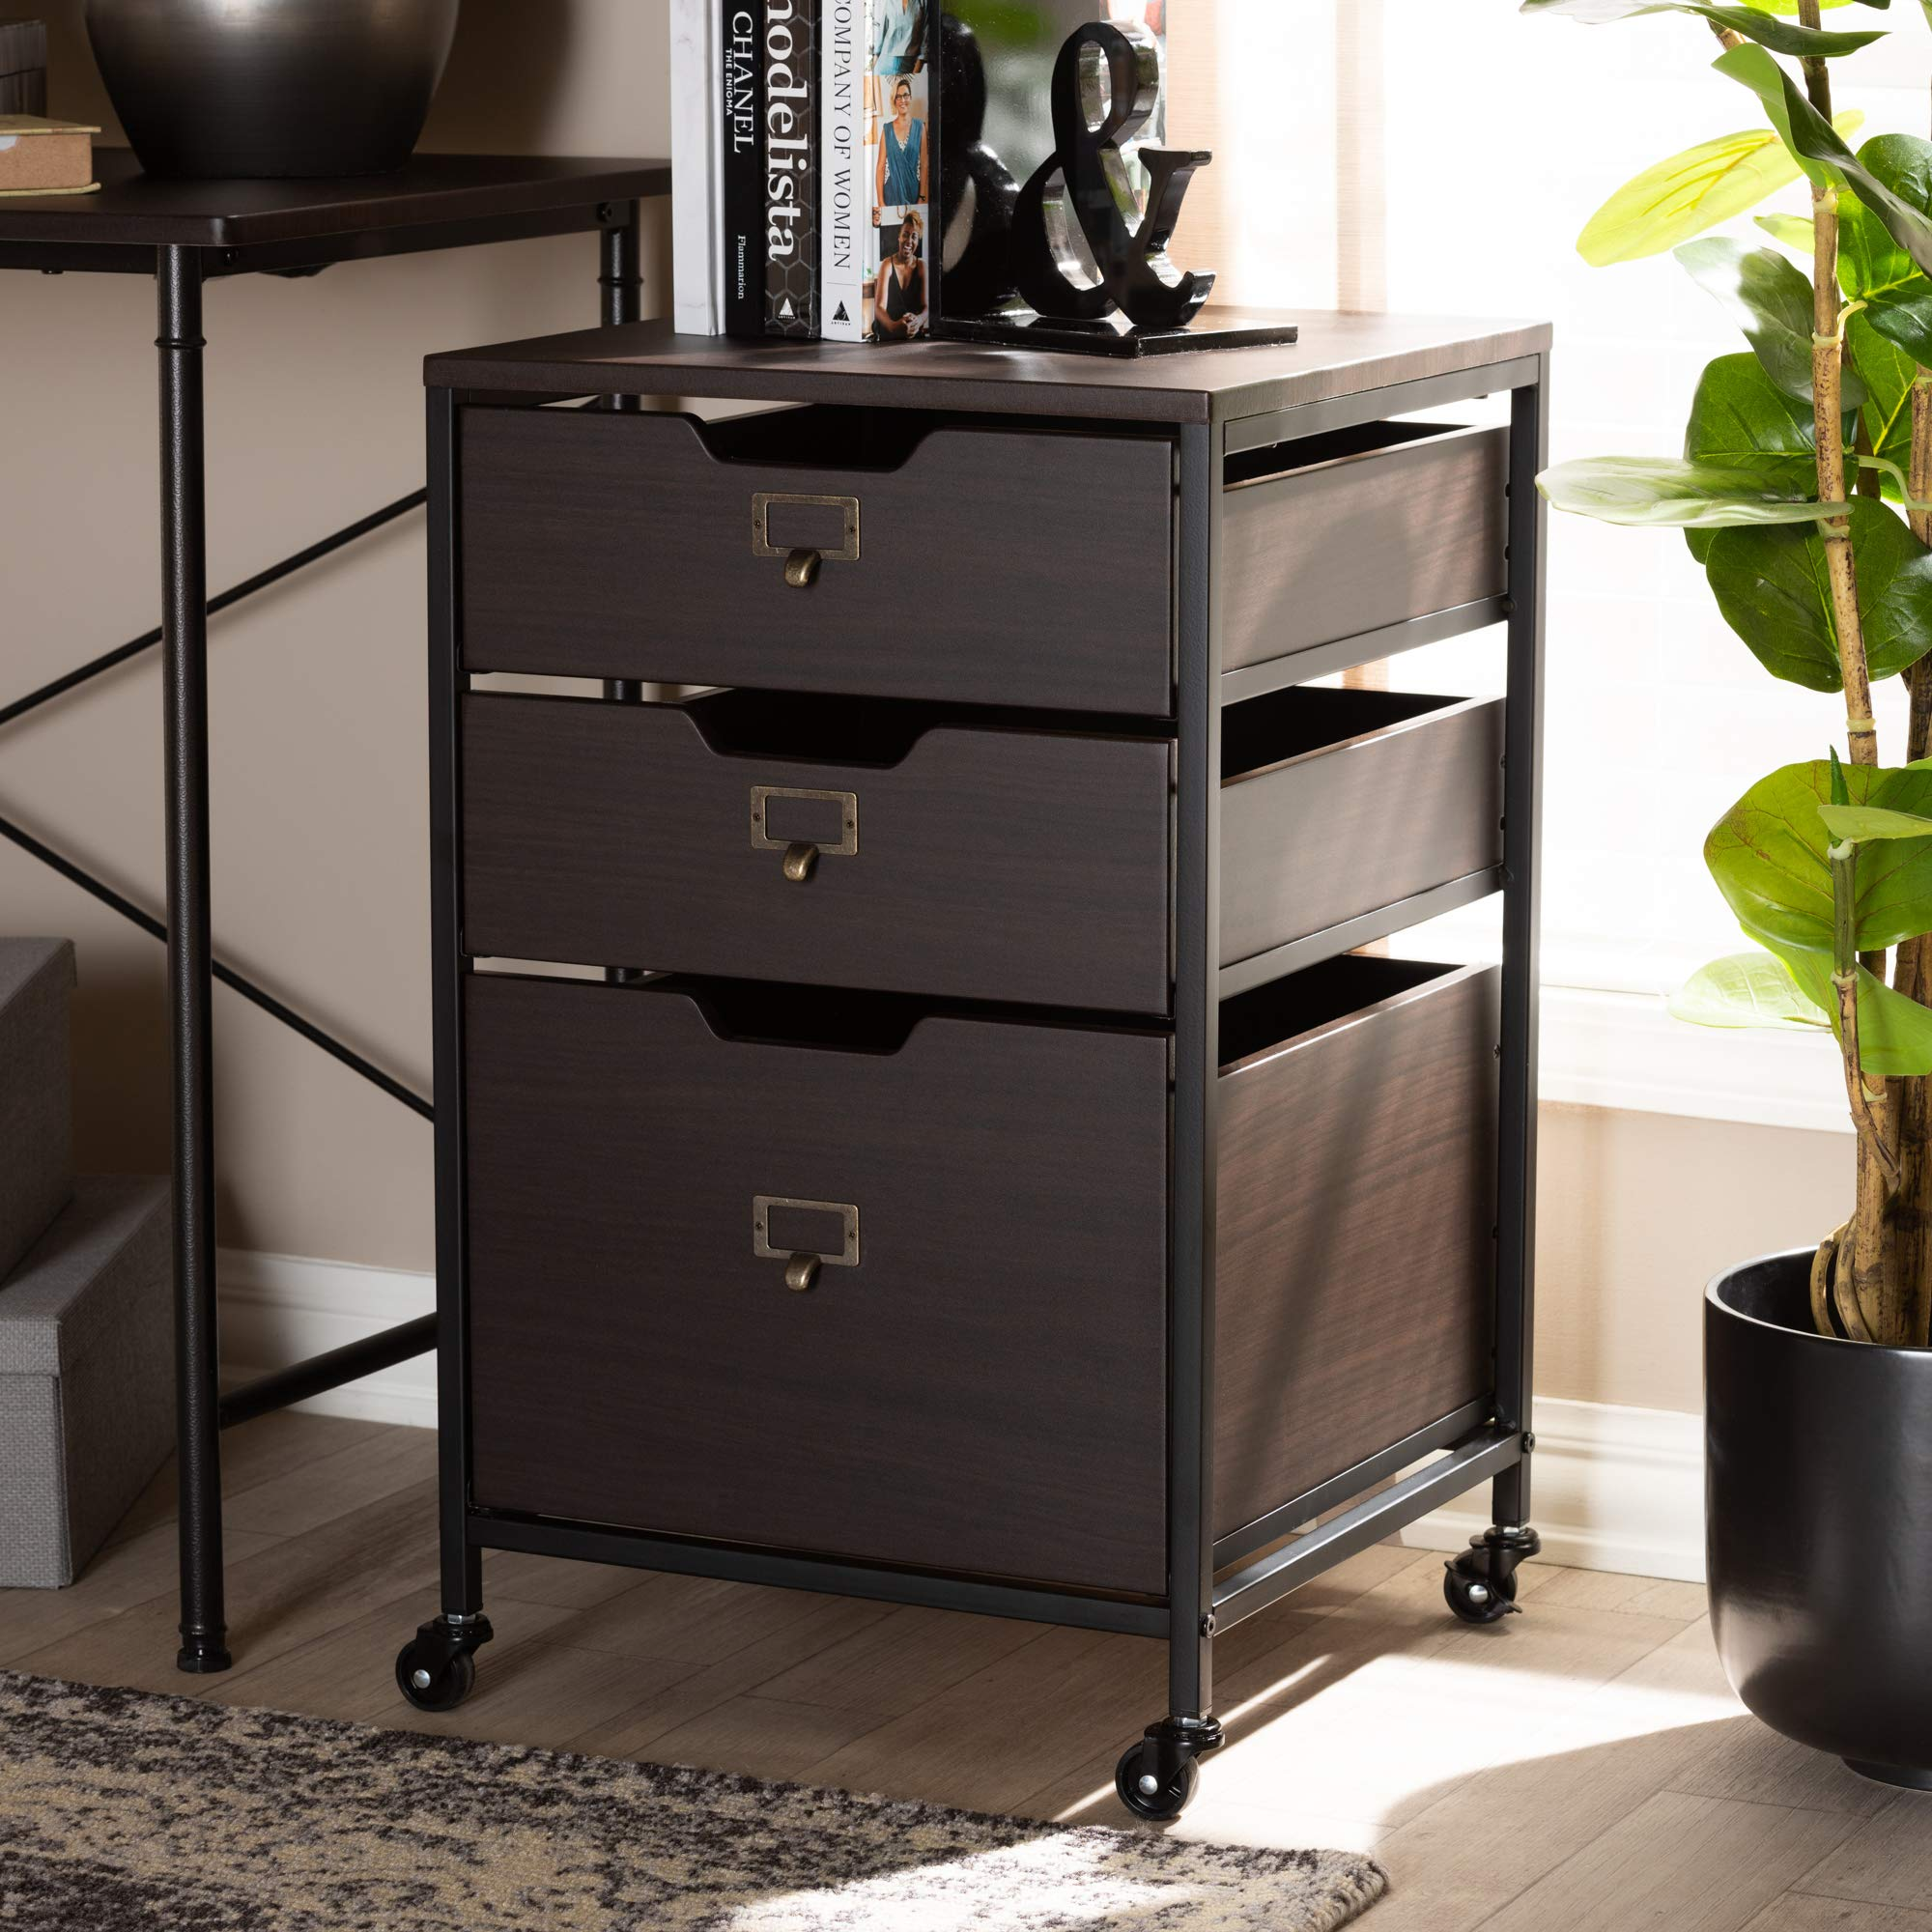 Baxton Studio 155-9688-AMZ Multipurpose Shelving and Cabinets, One Size, Espresso by Baxton Studio (Image #9)